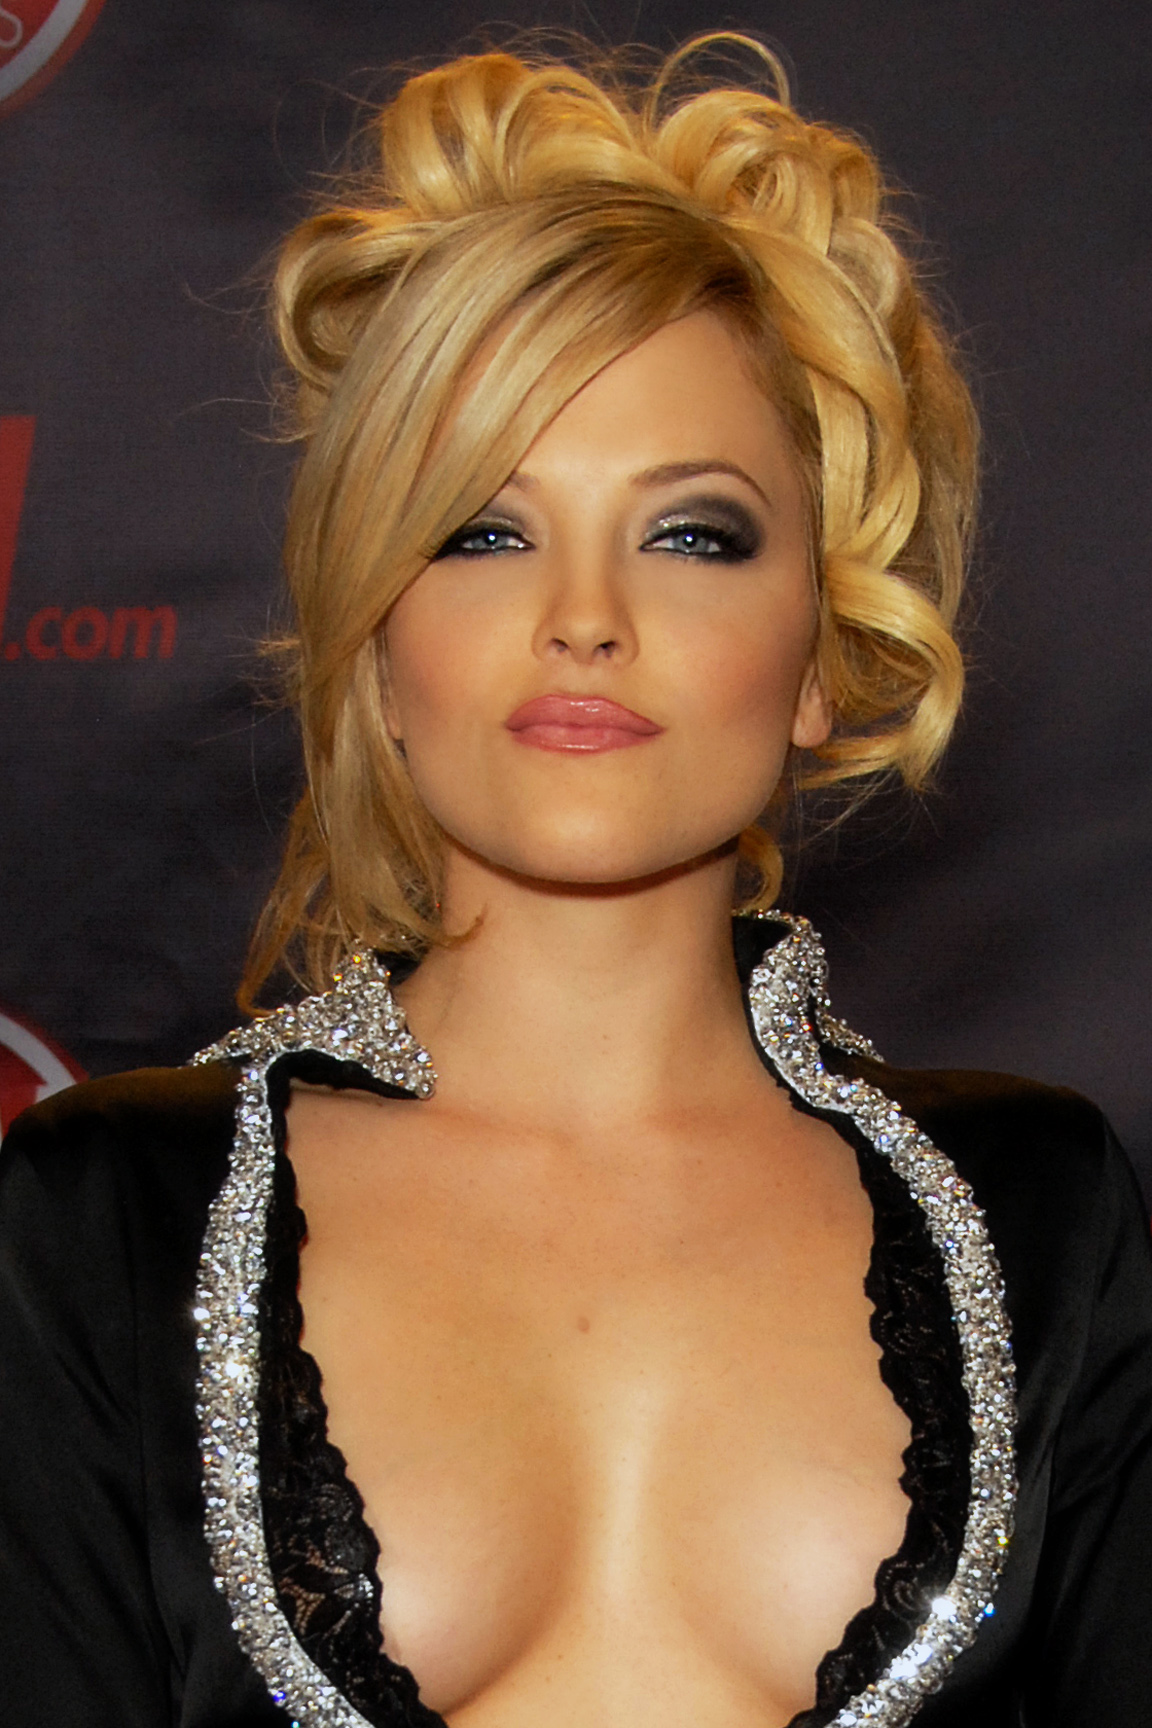 Description Alexis Texas 2010.jpg